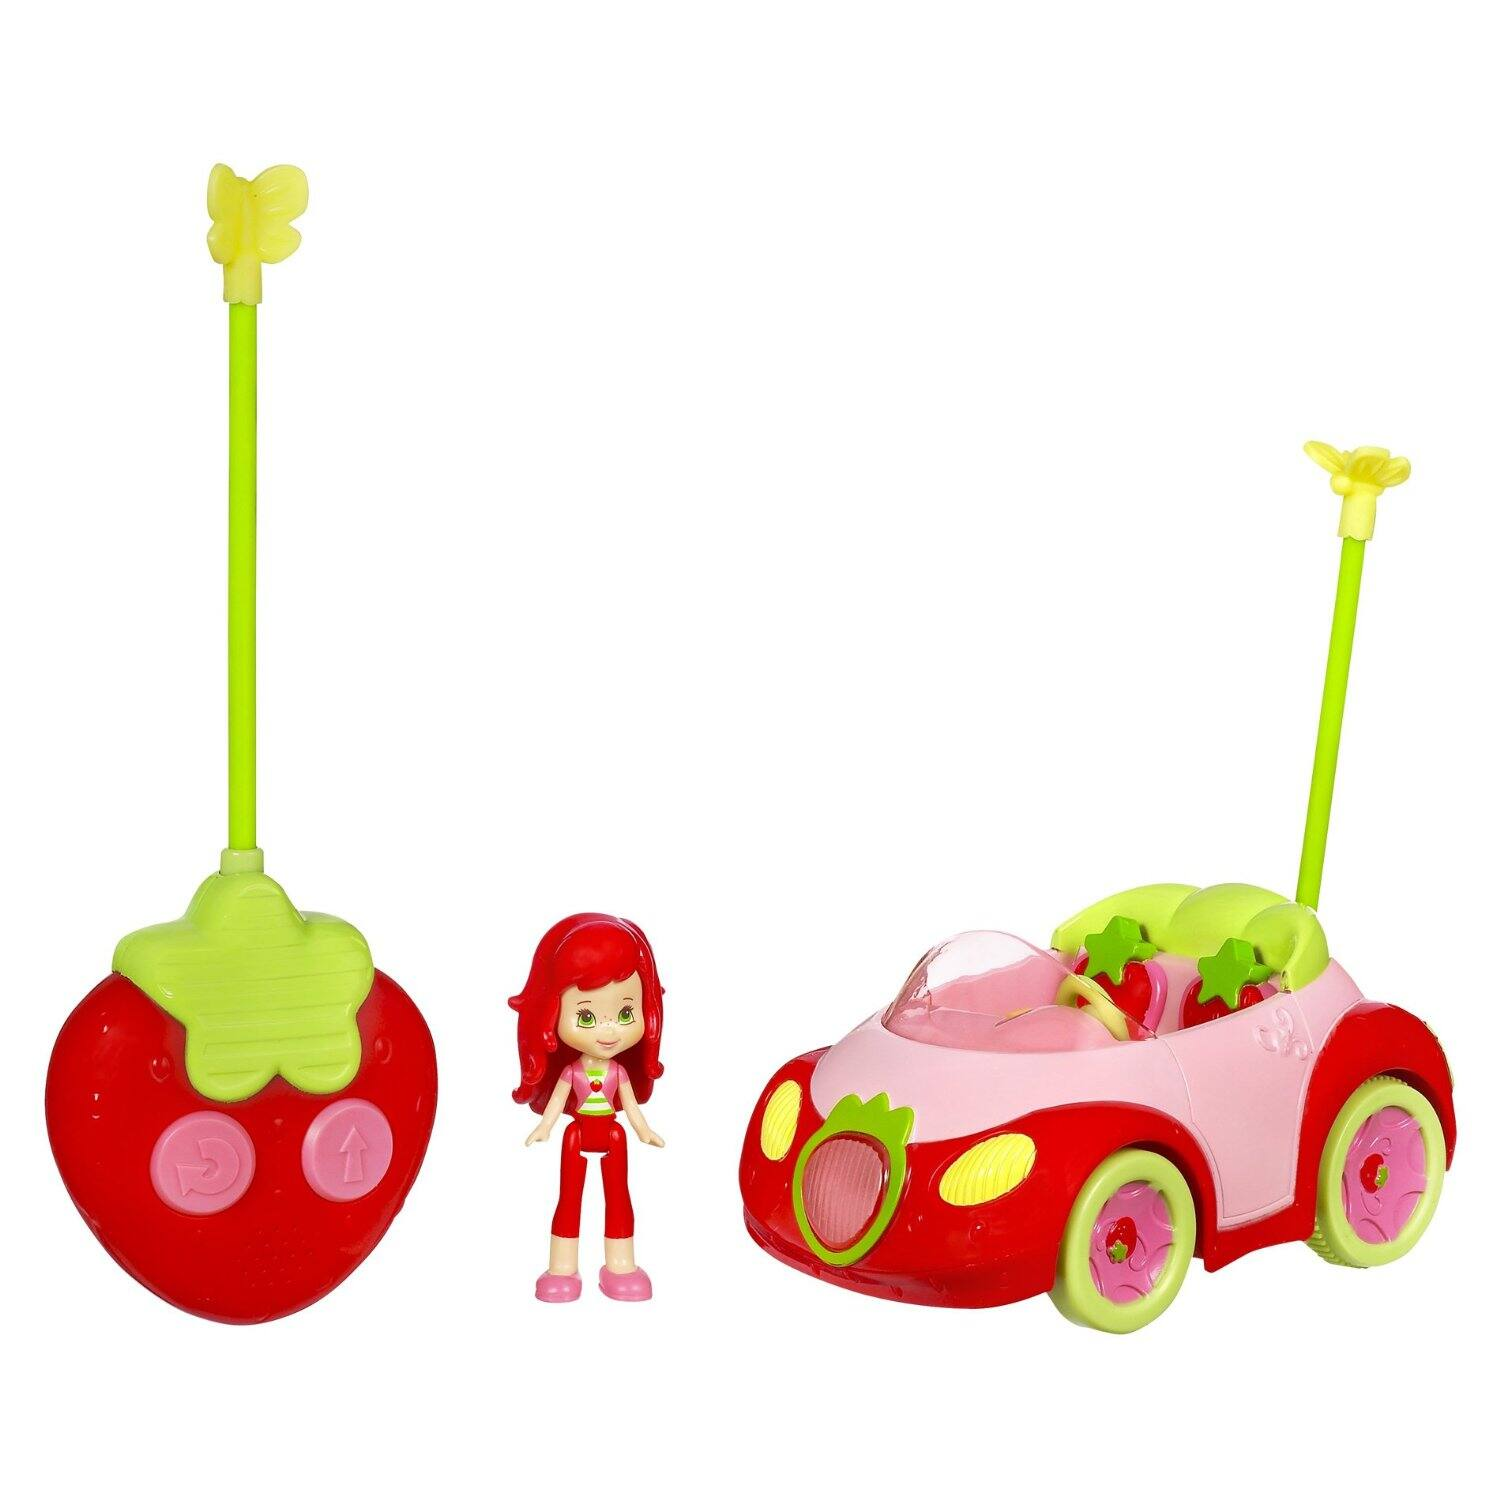 Strawberry Shortcake Dolls & Toys: Berry Best 5-Doll Set $20, Sun Lovin Convertible RC Vehicle $11, Strawberry Shortcake Memory Game $5 & More + Free In-Store Pick Up